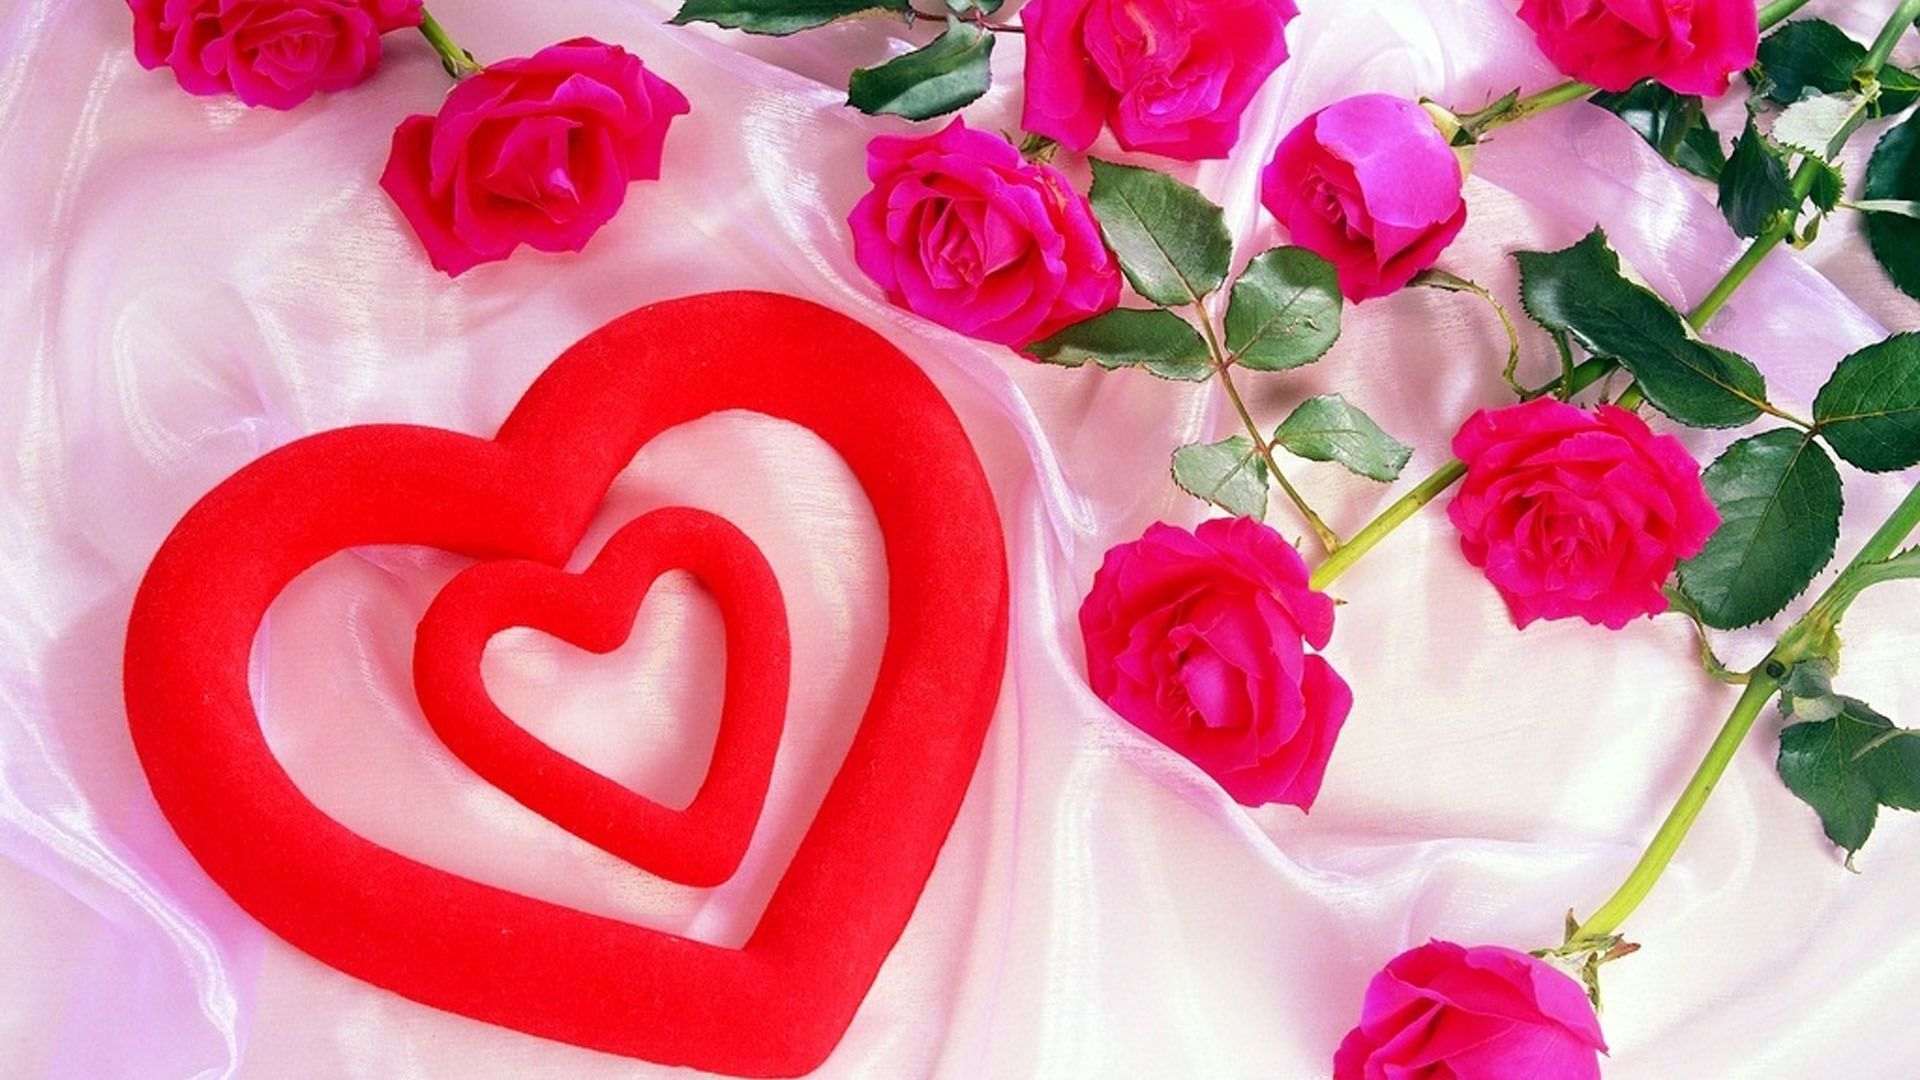 Rose With Love Heart Wallpaper | HD Desktop Background